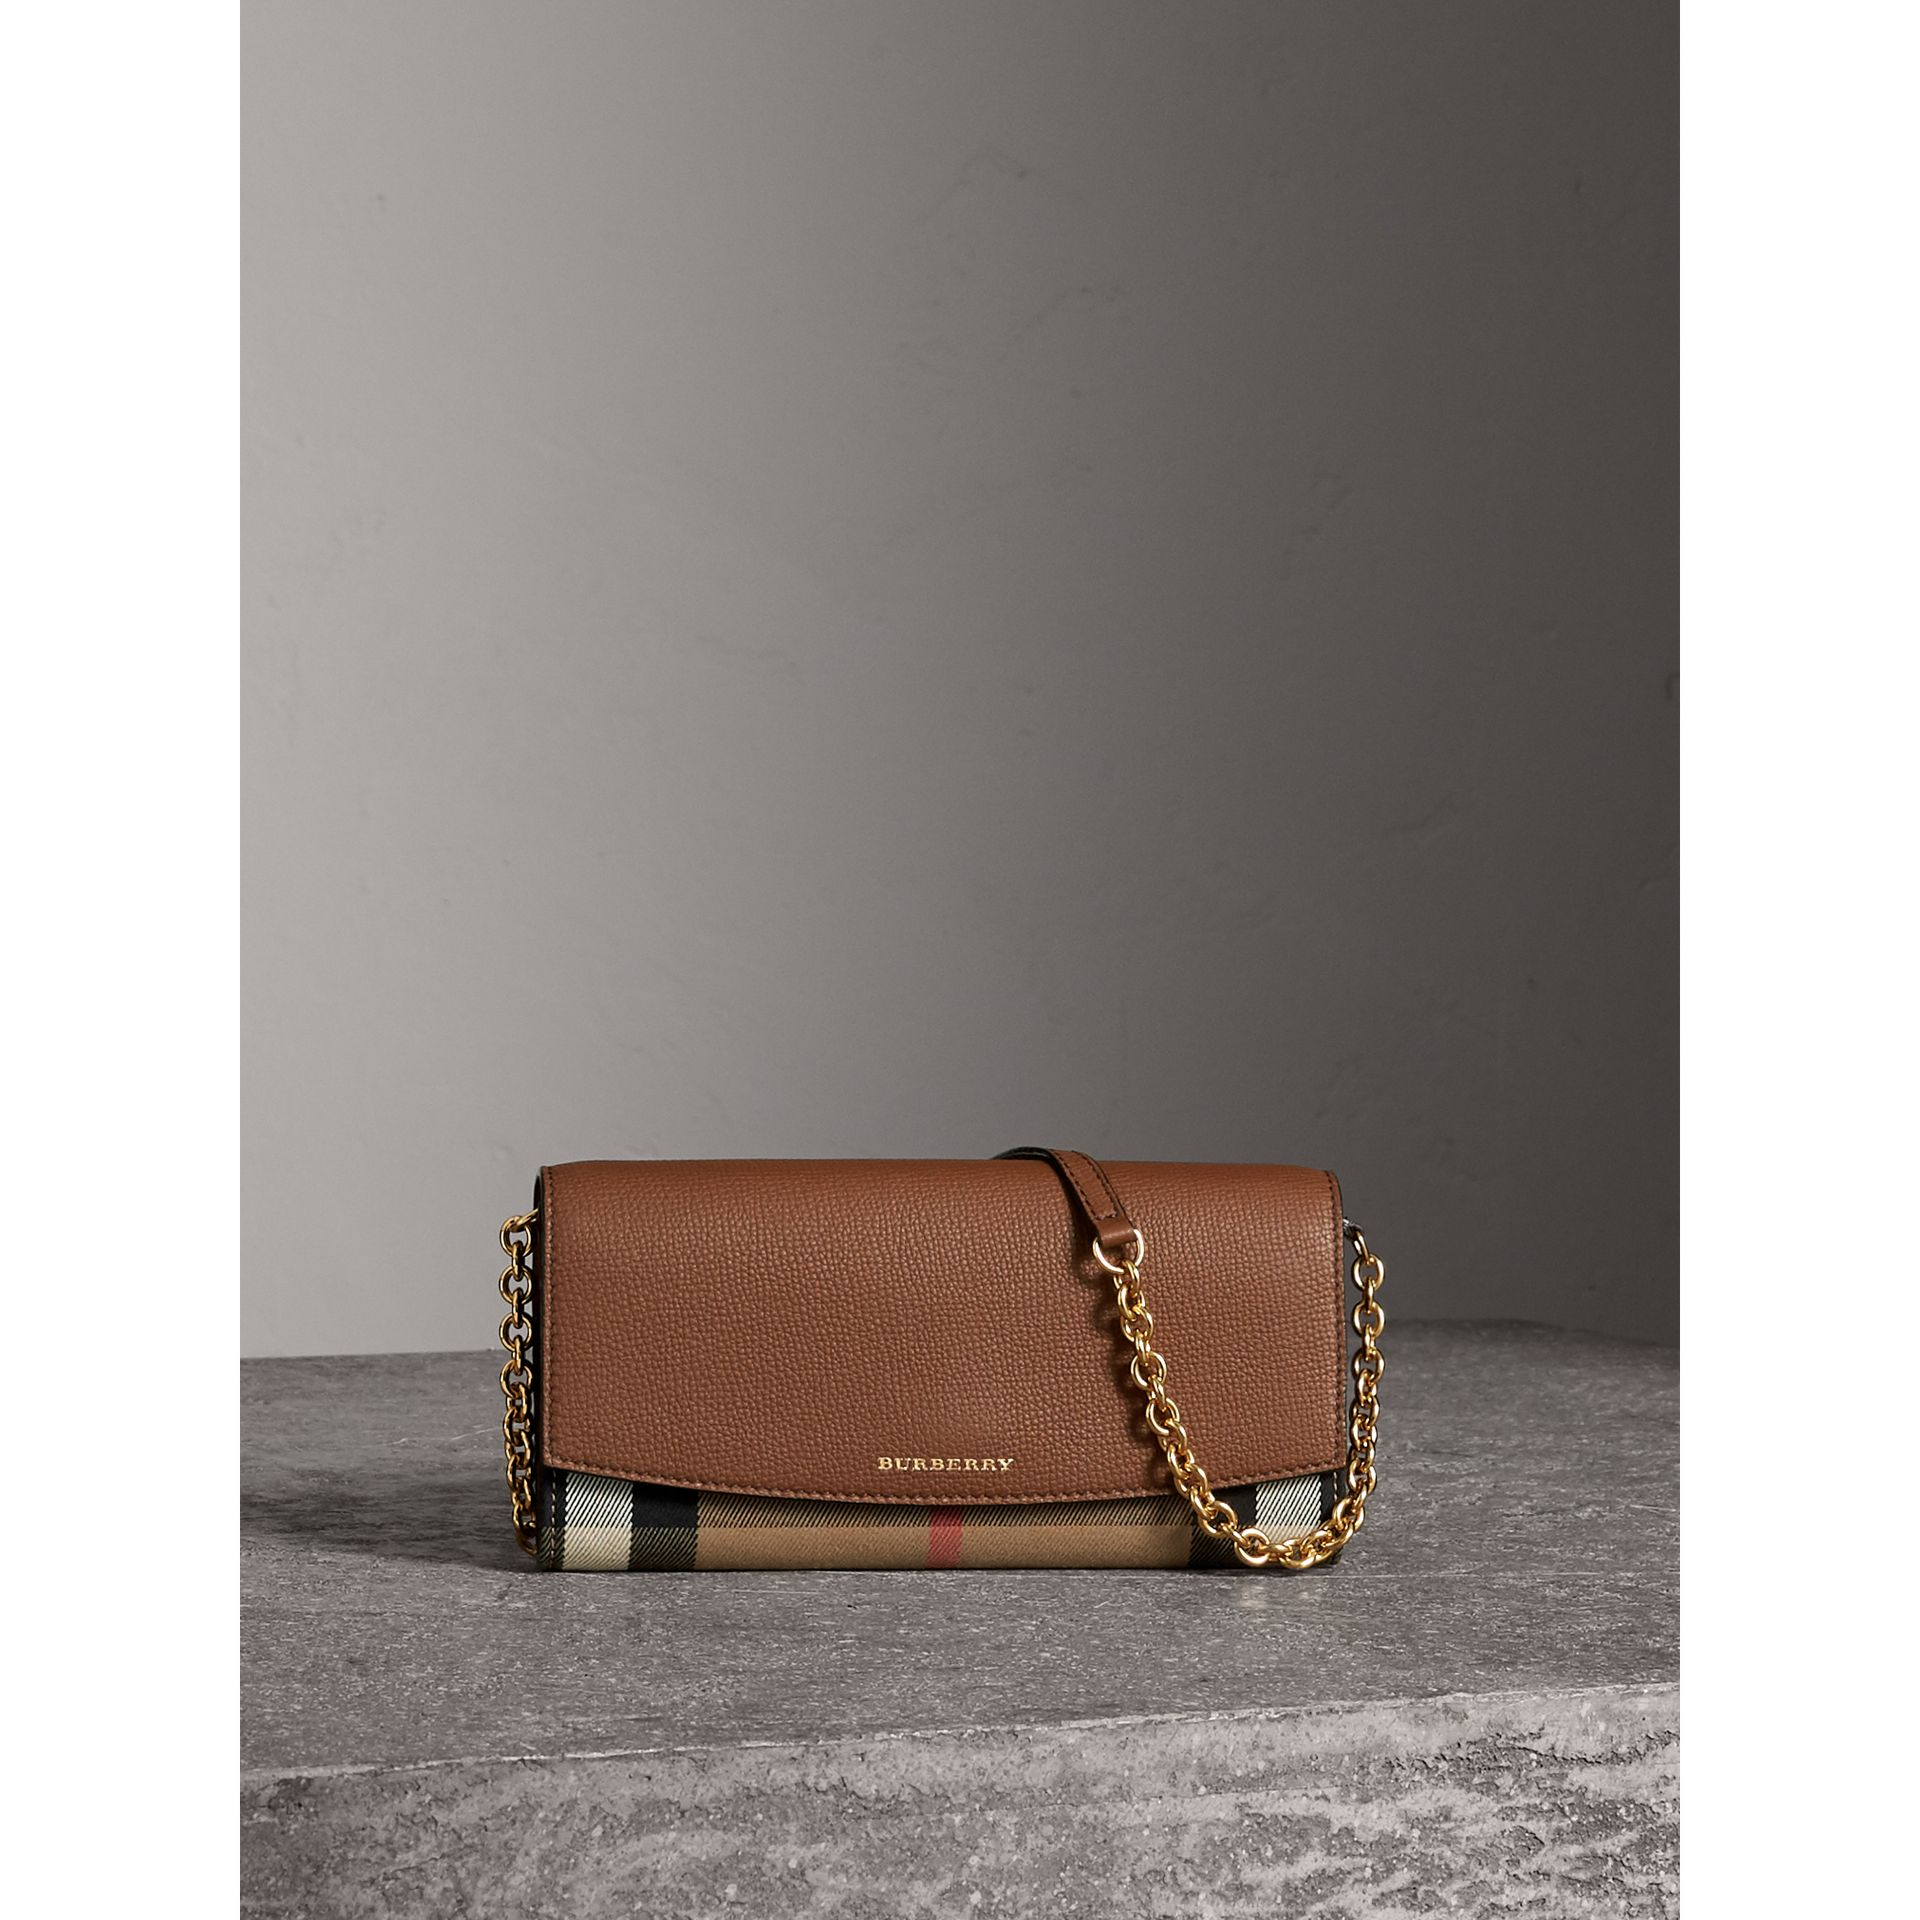 House Check and Leather Wallet with Chain in Tan - Women | Burberry Australia - gallery image 0